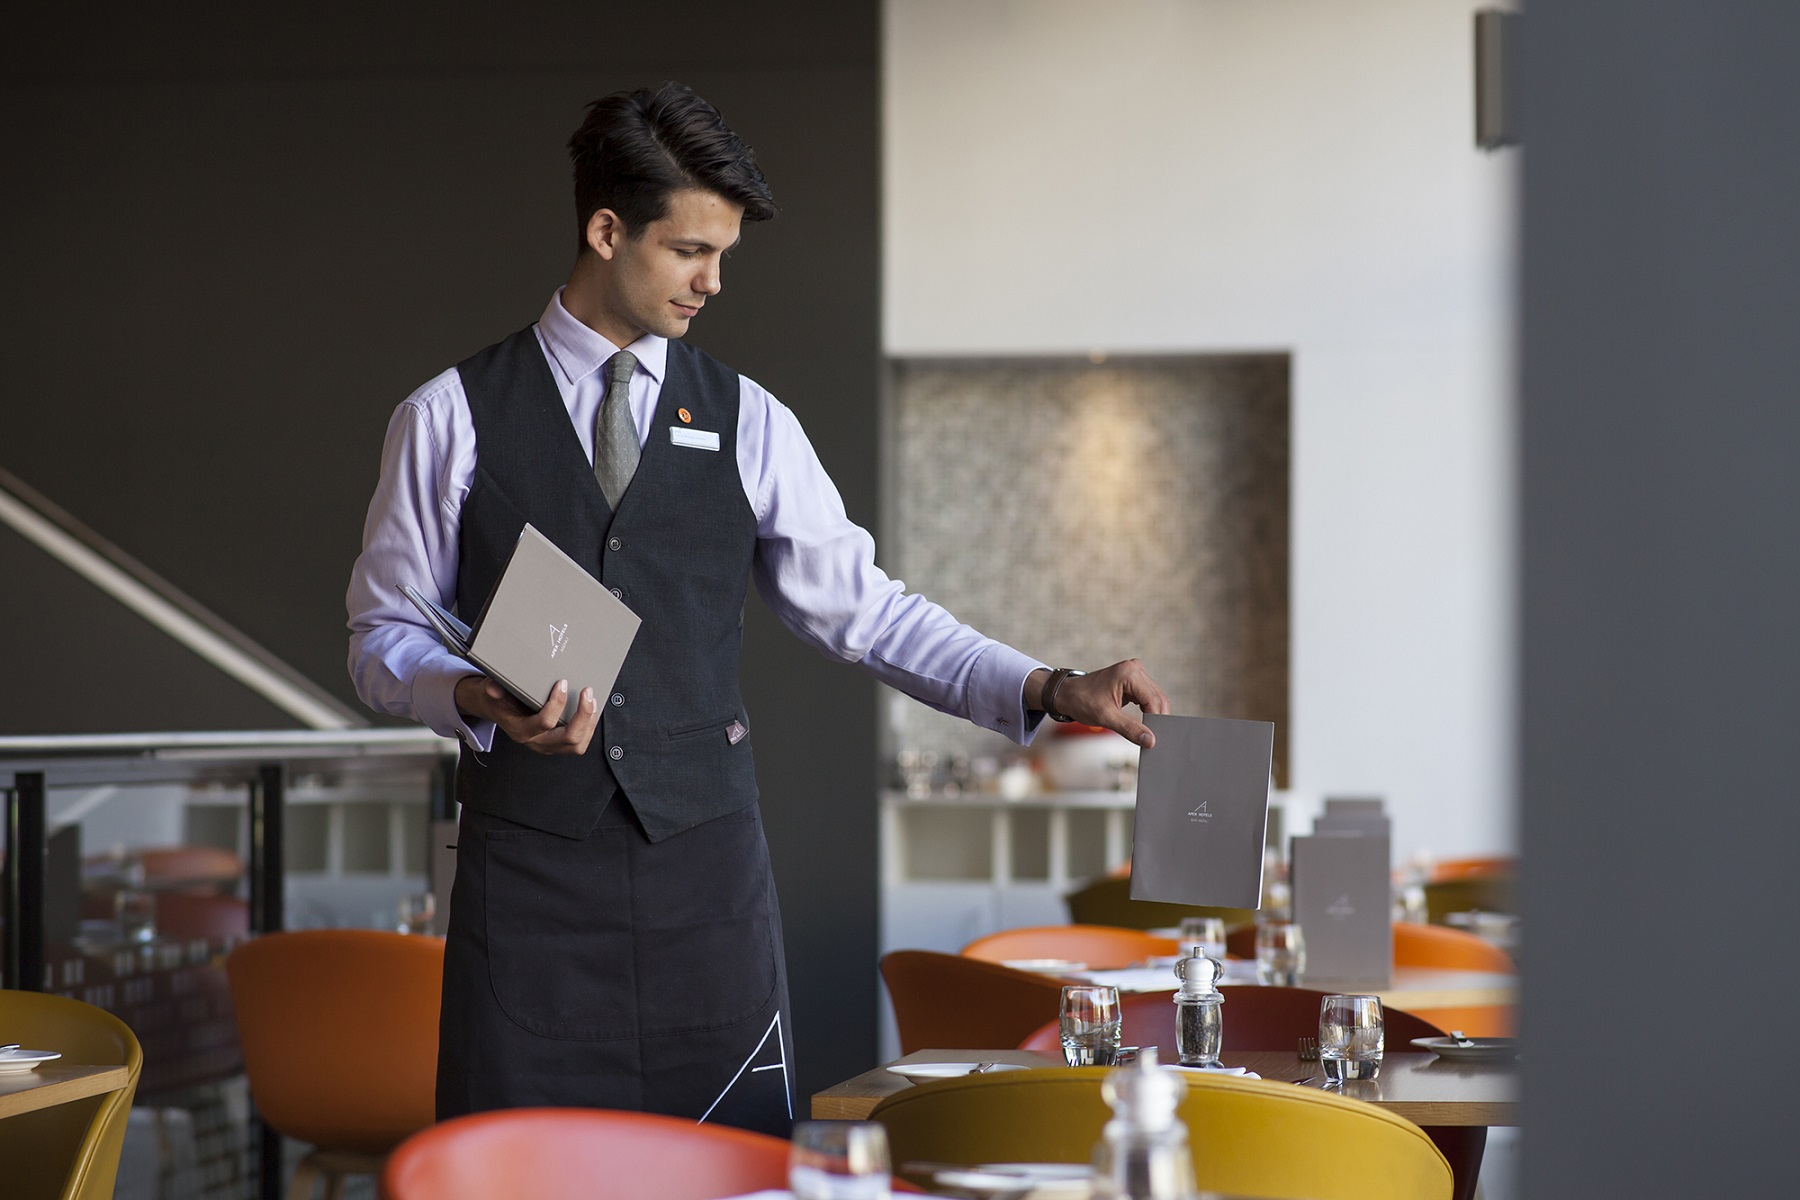 Joe Posnett lays out menus on cafe tables at the Apex Hotel